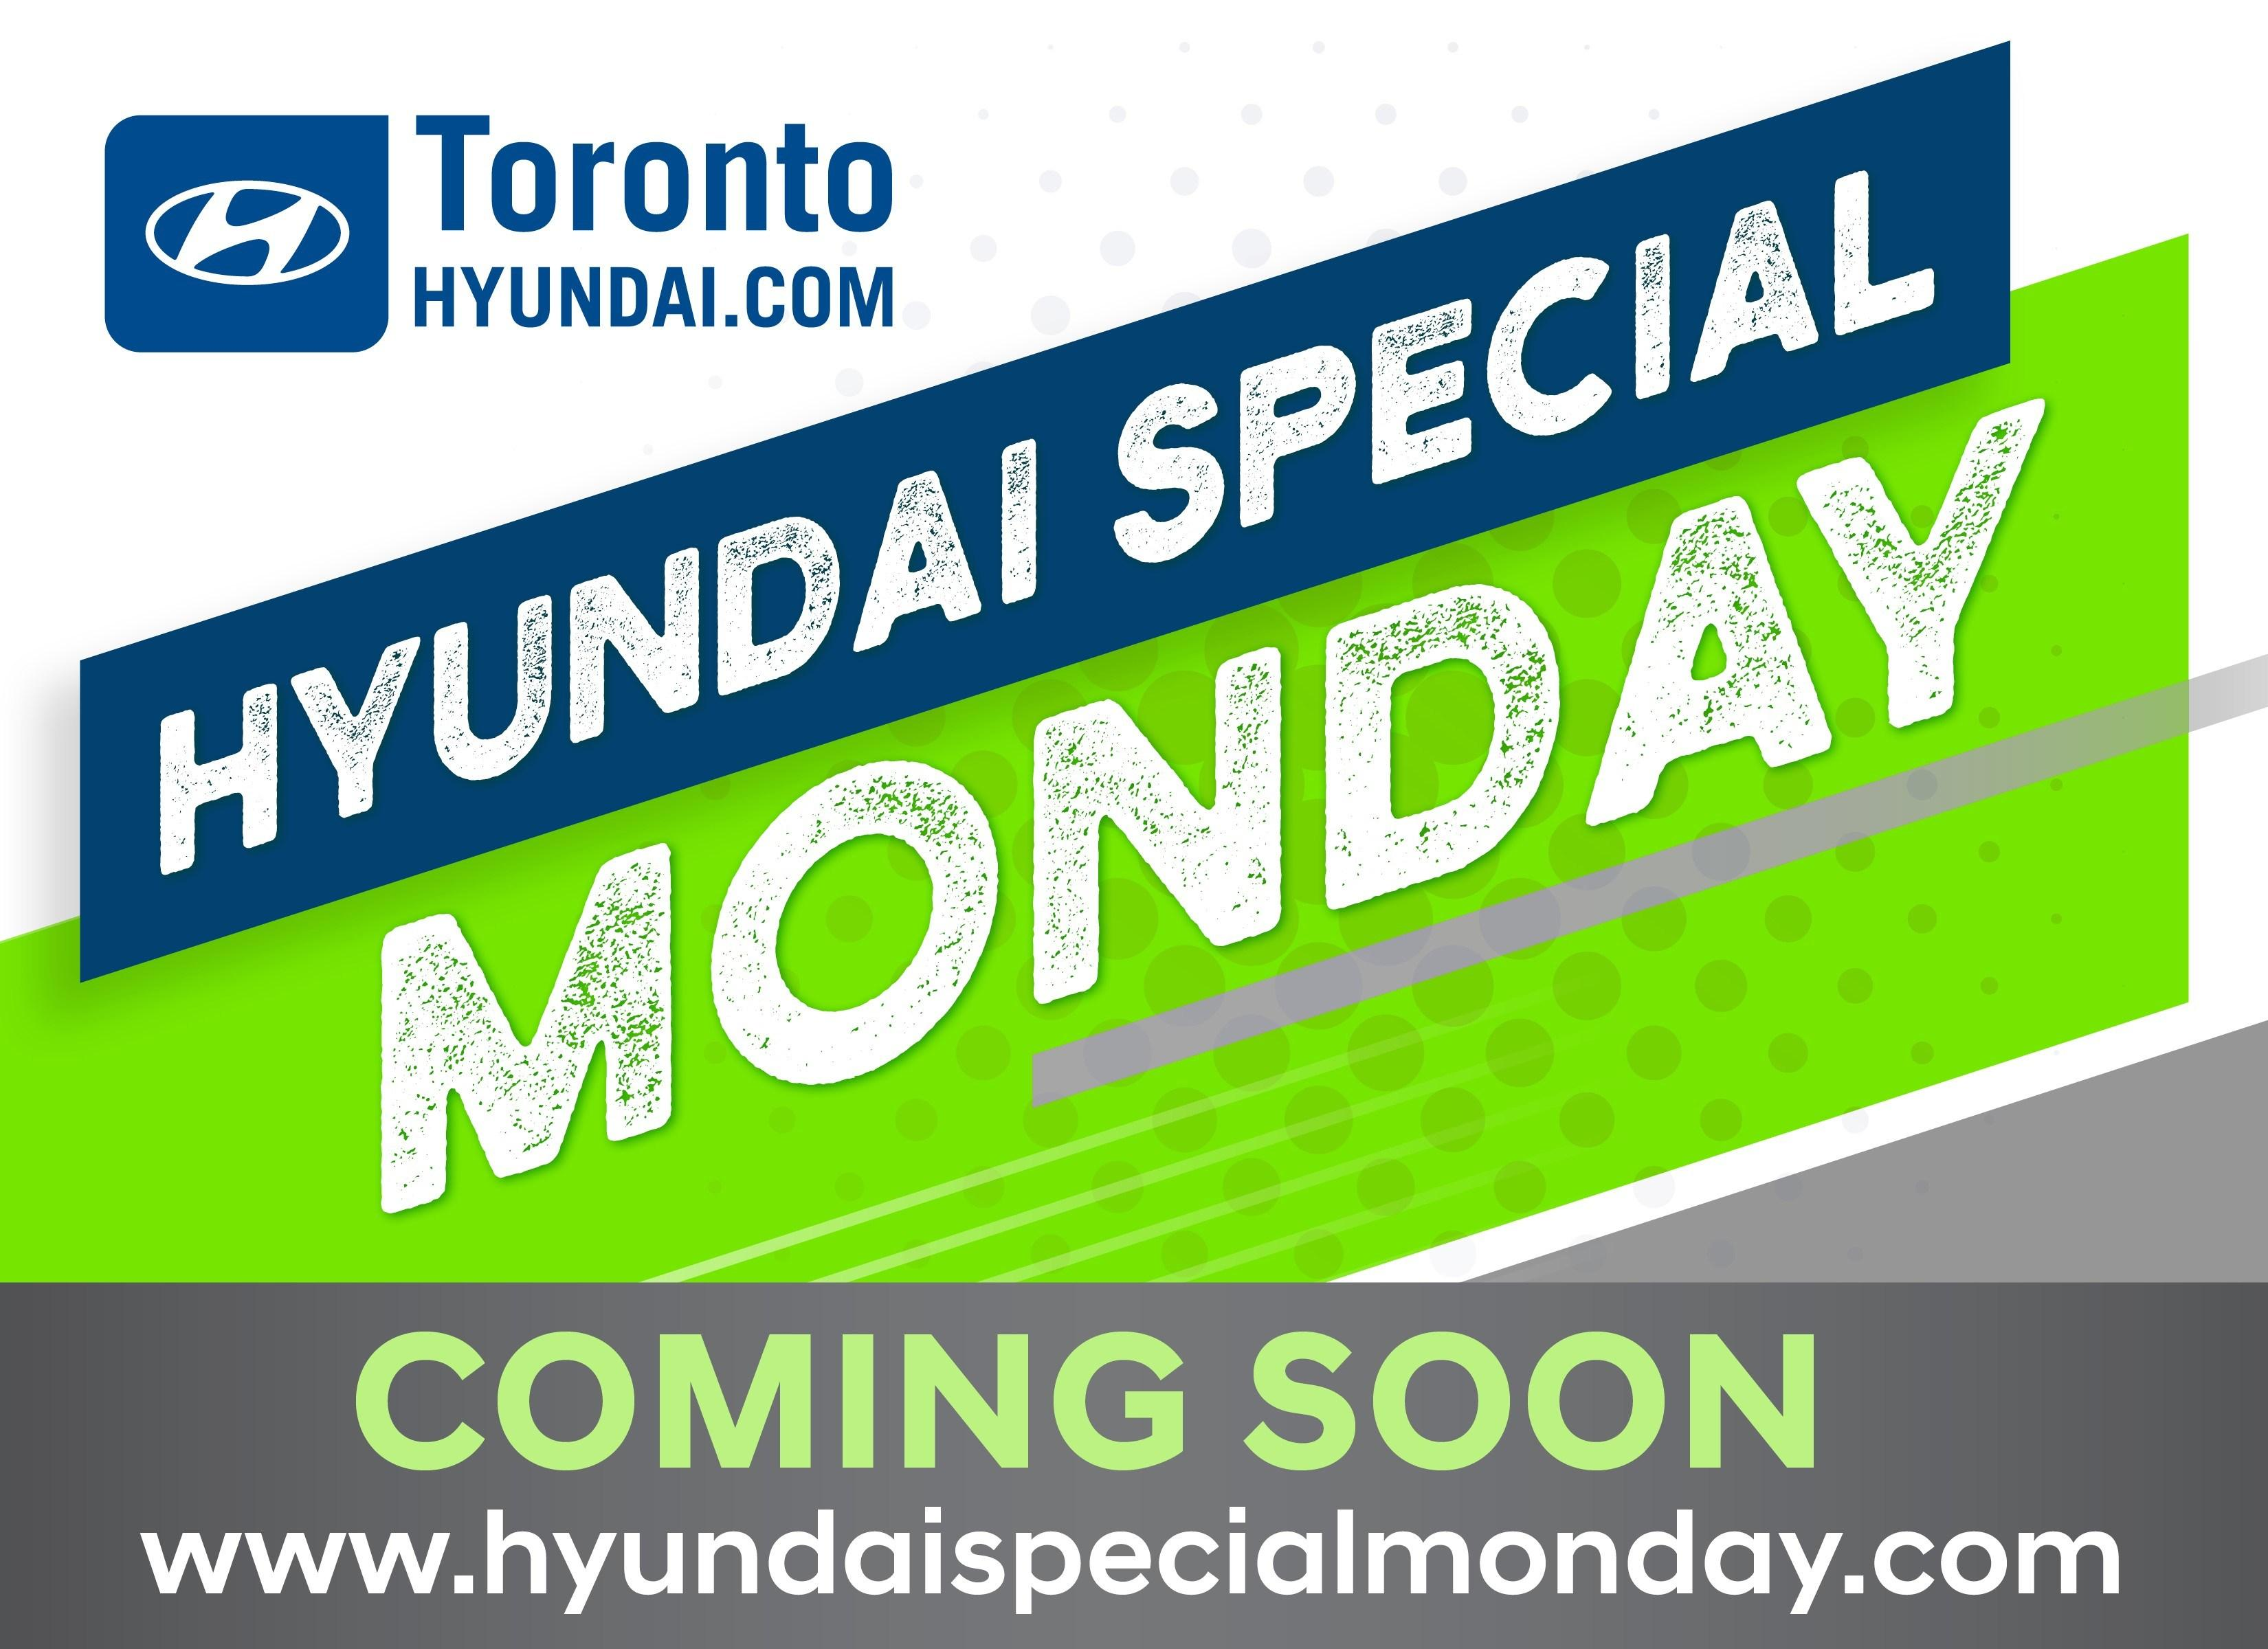 Hyundai Special Monday coming soon - lime green